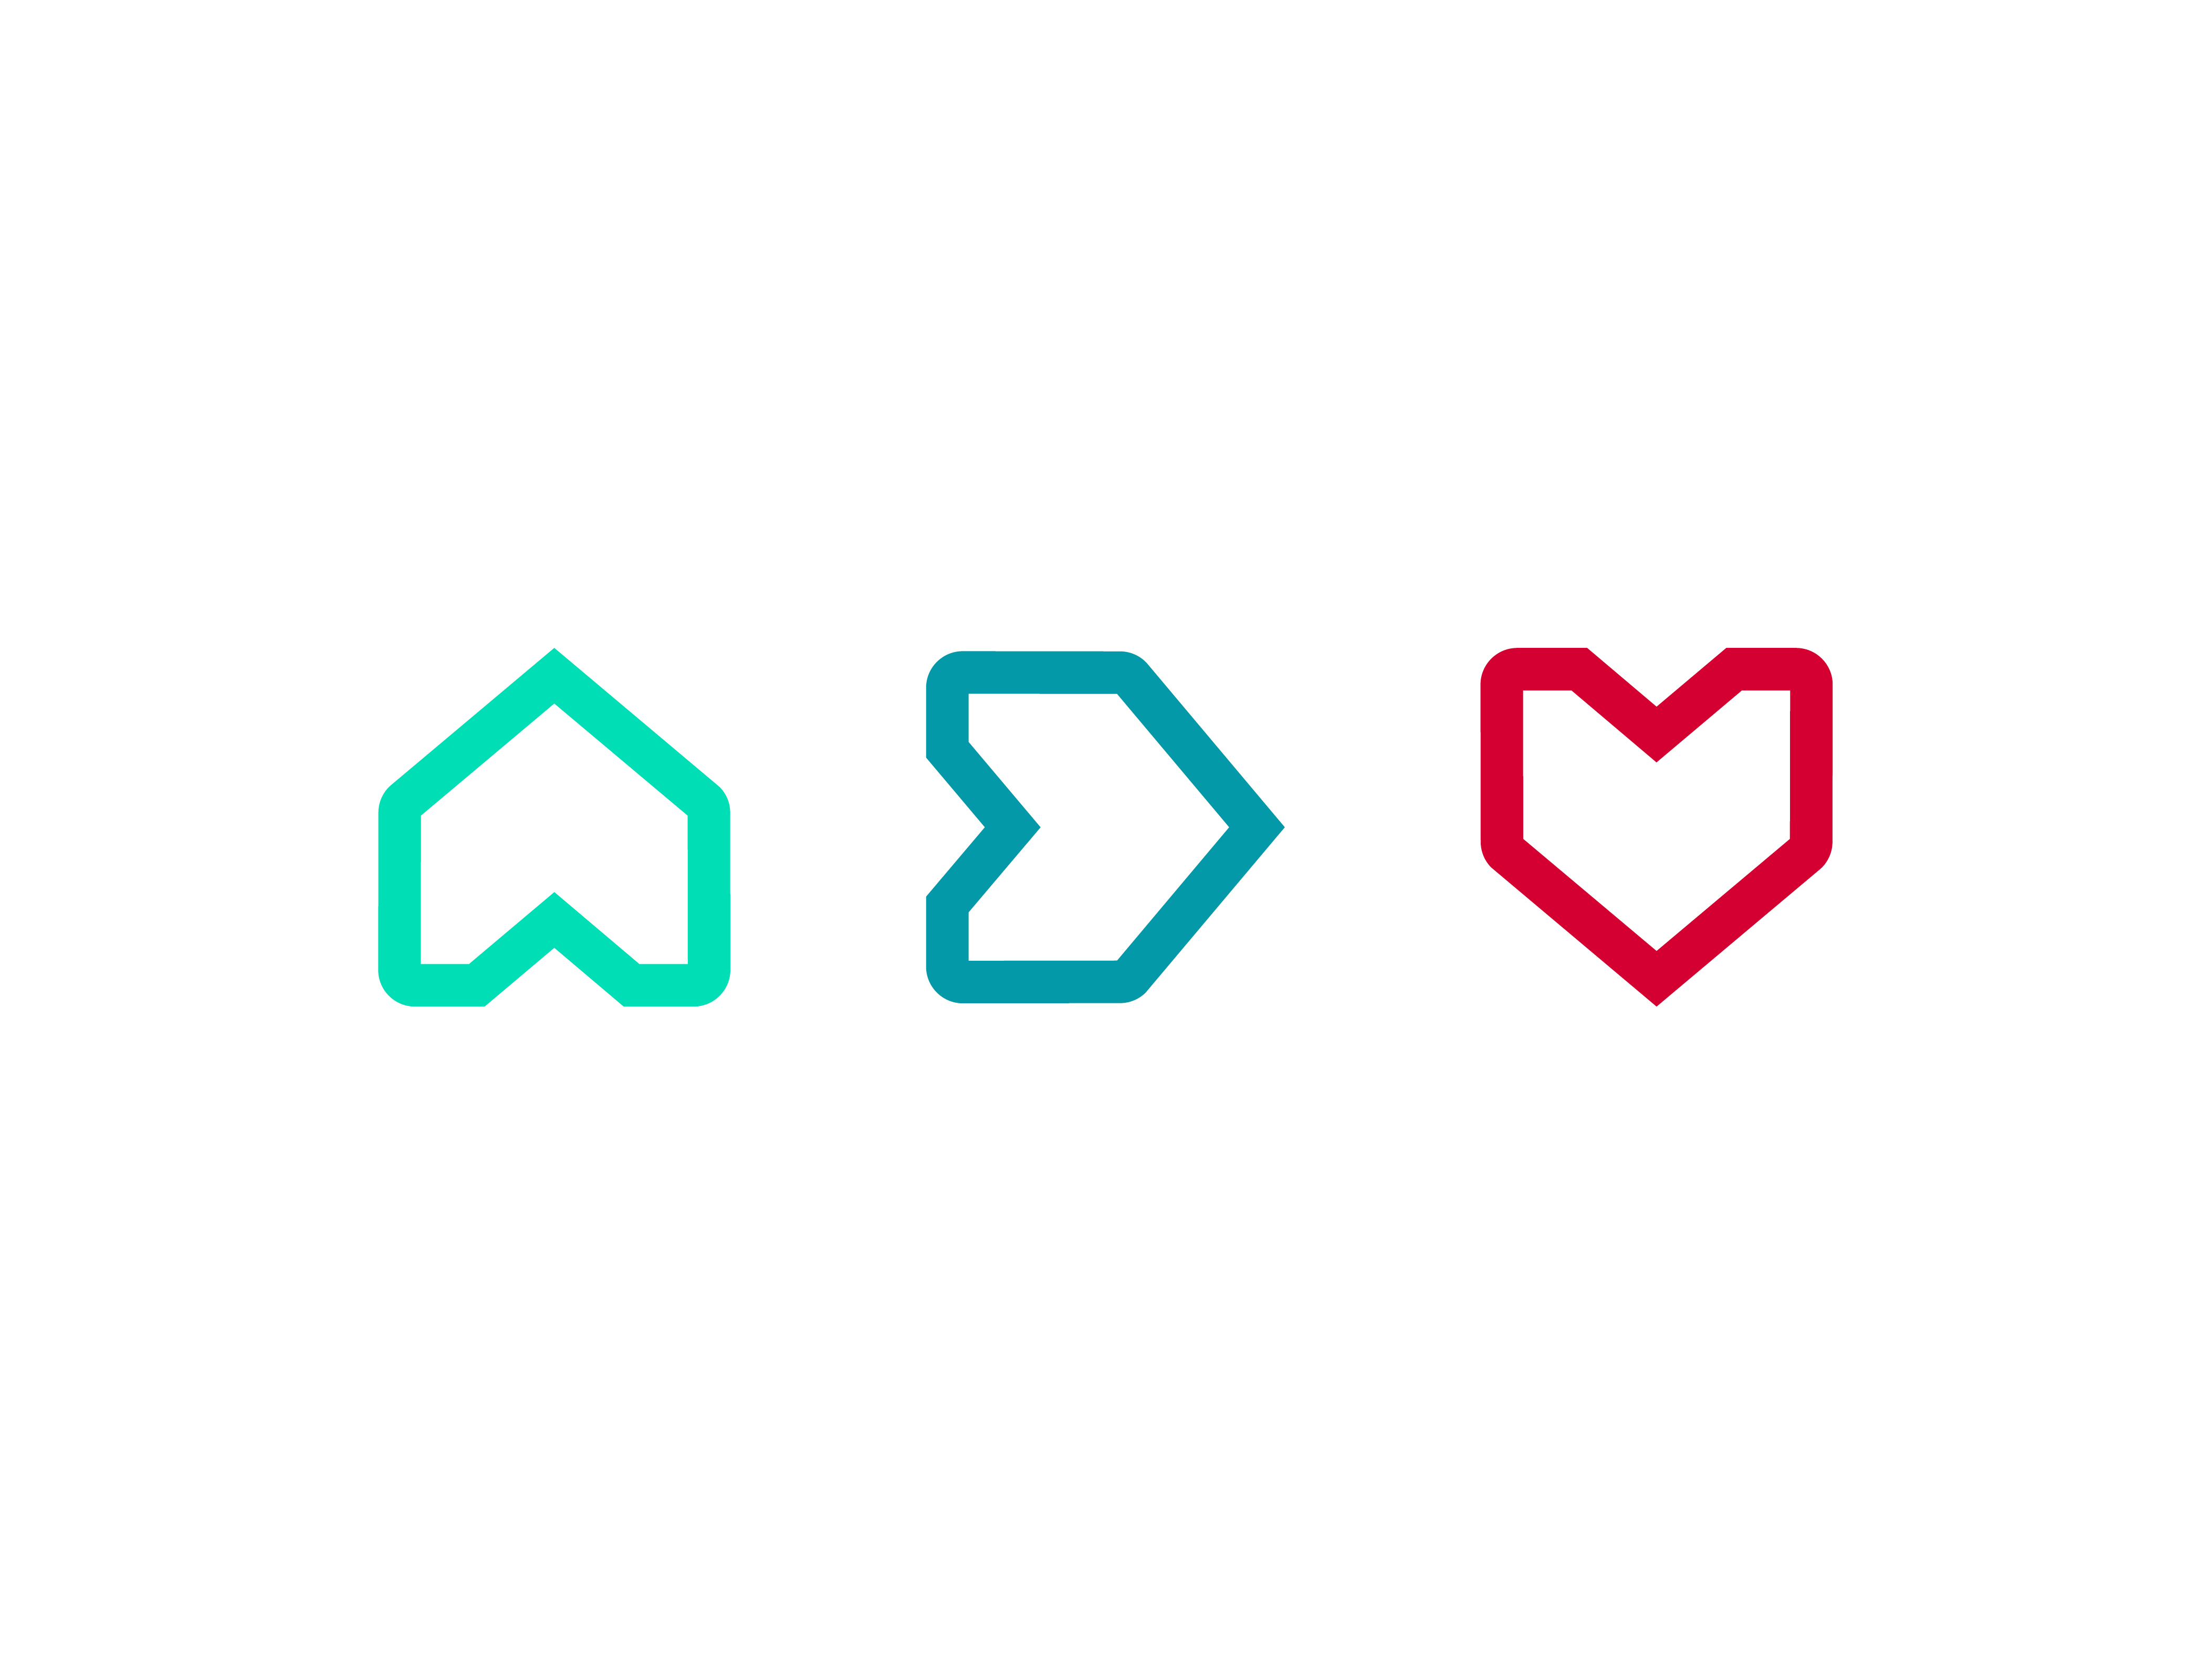 rightmove_symbols